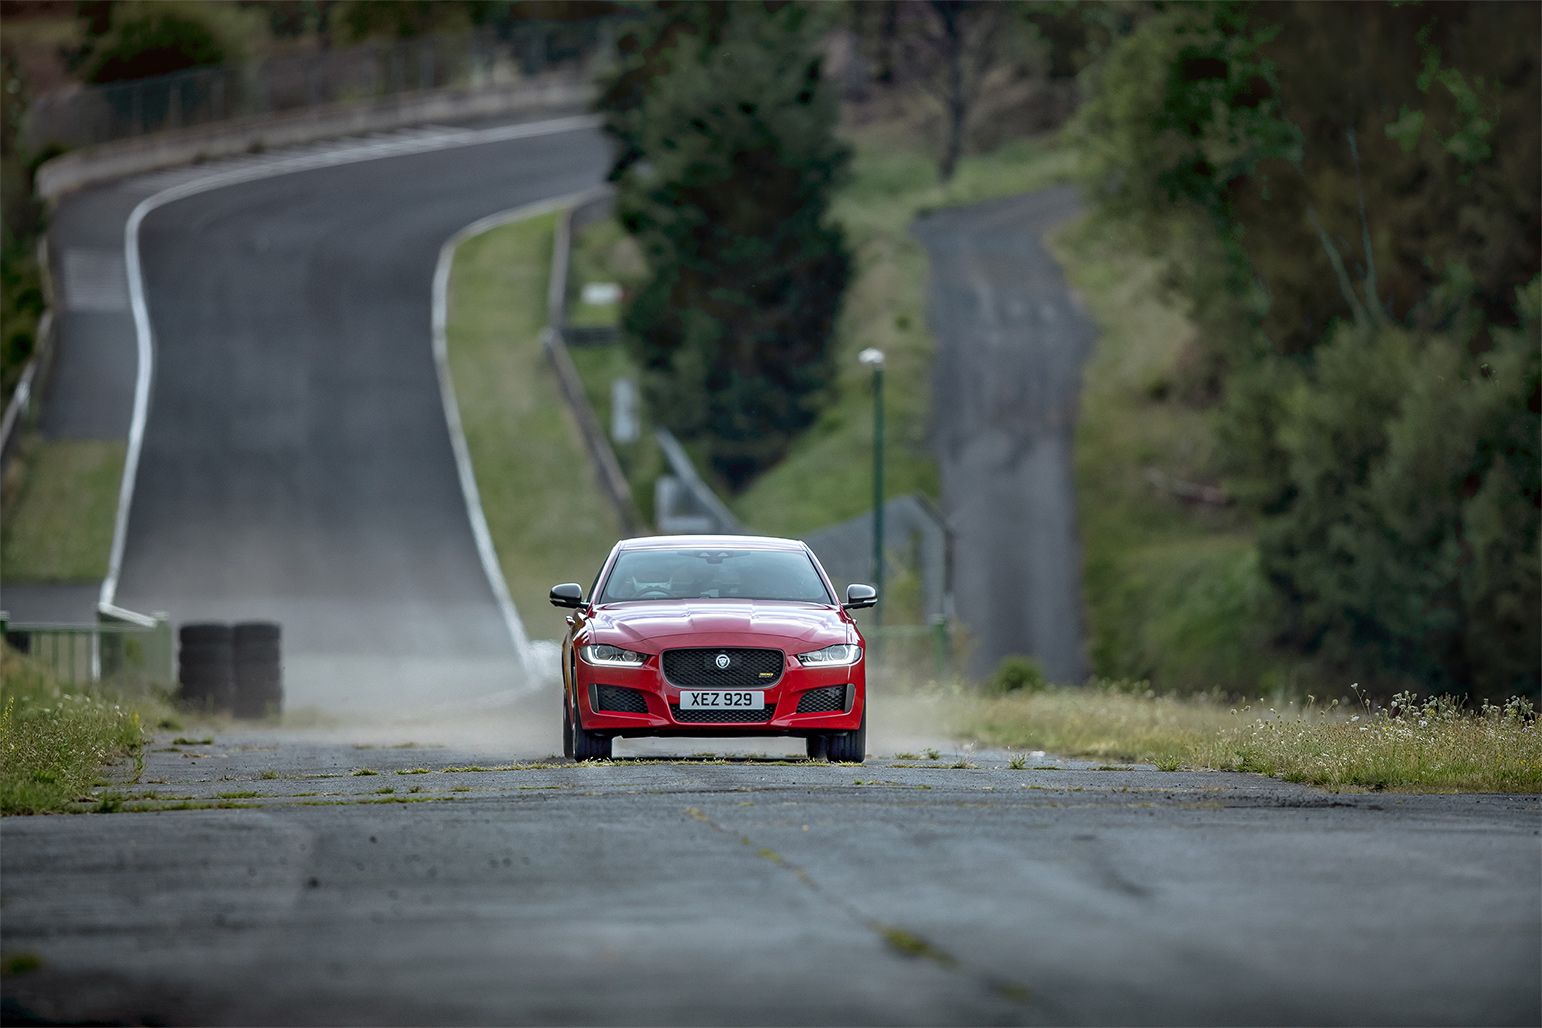 TrackWorthy - 2019 Jaguar XE 300 SPORT at Forgotten GP Circuit (6)